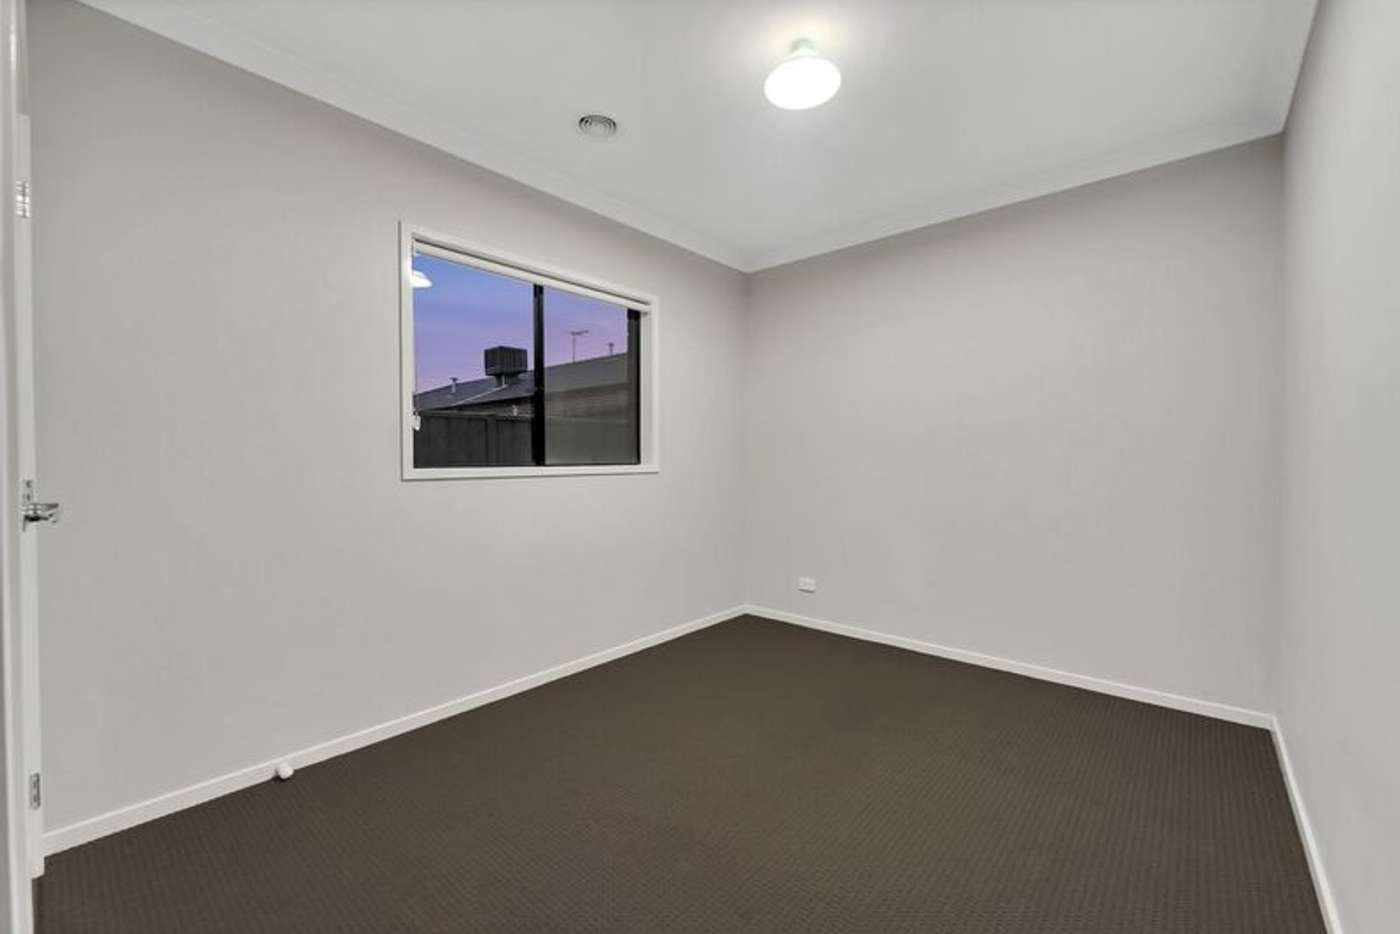 Sixth view of Homely house listing, 4 Wonderboom Avenue, Tarneit VIC 3029